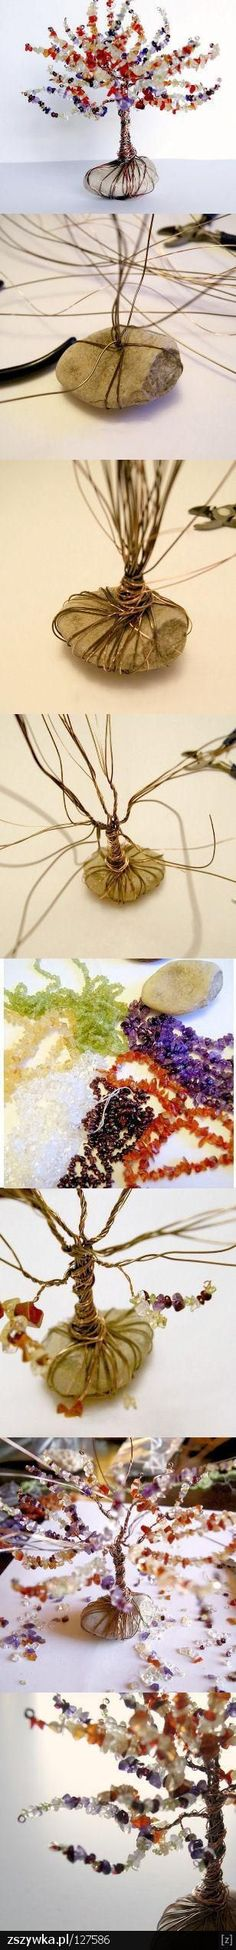 "DIY Beads : DIY bead and wire tree ~wrap a large ""Stone"" with ""Wire"" and add lots of ""Jewellery Stones""~"